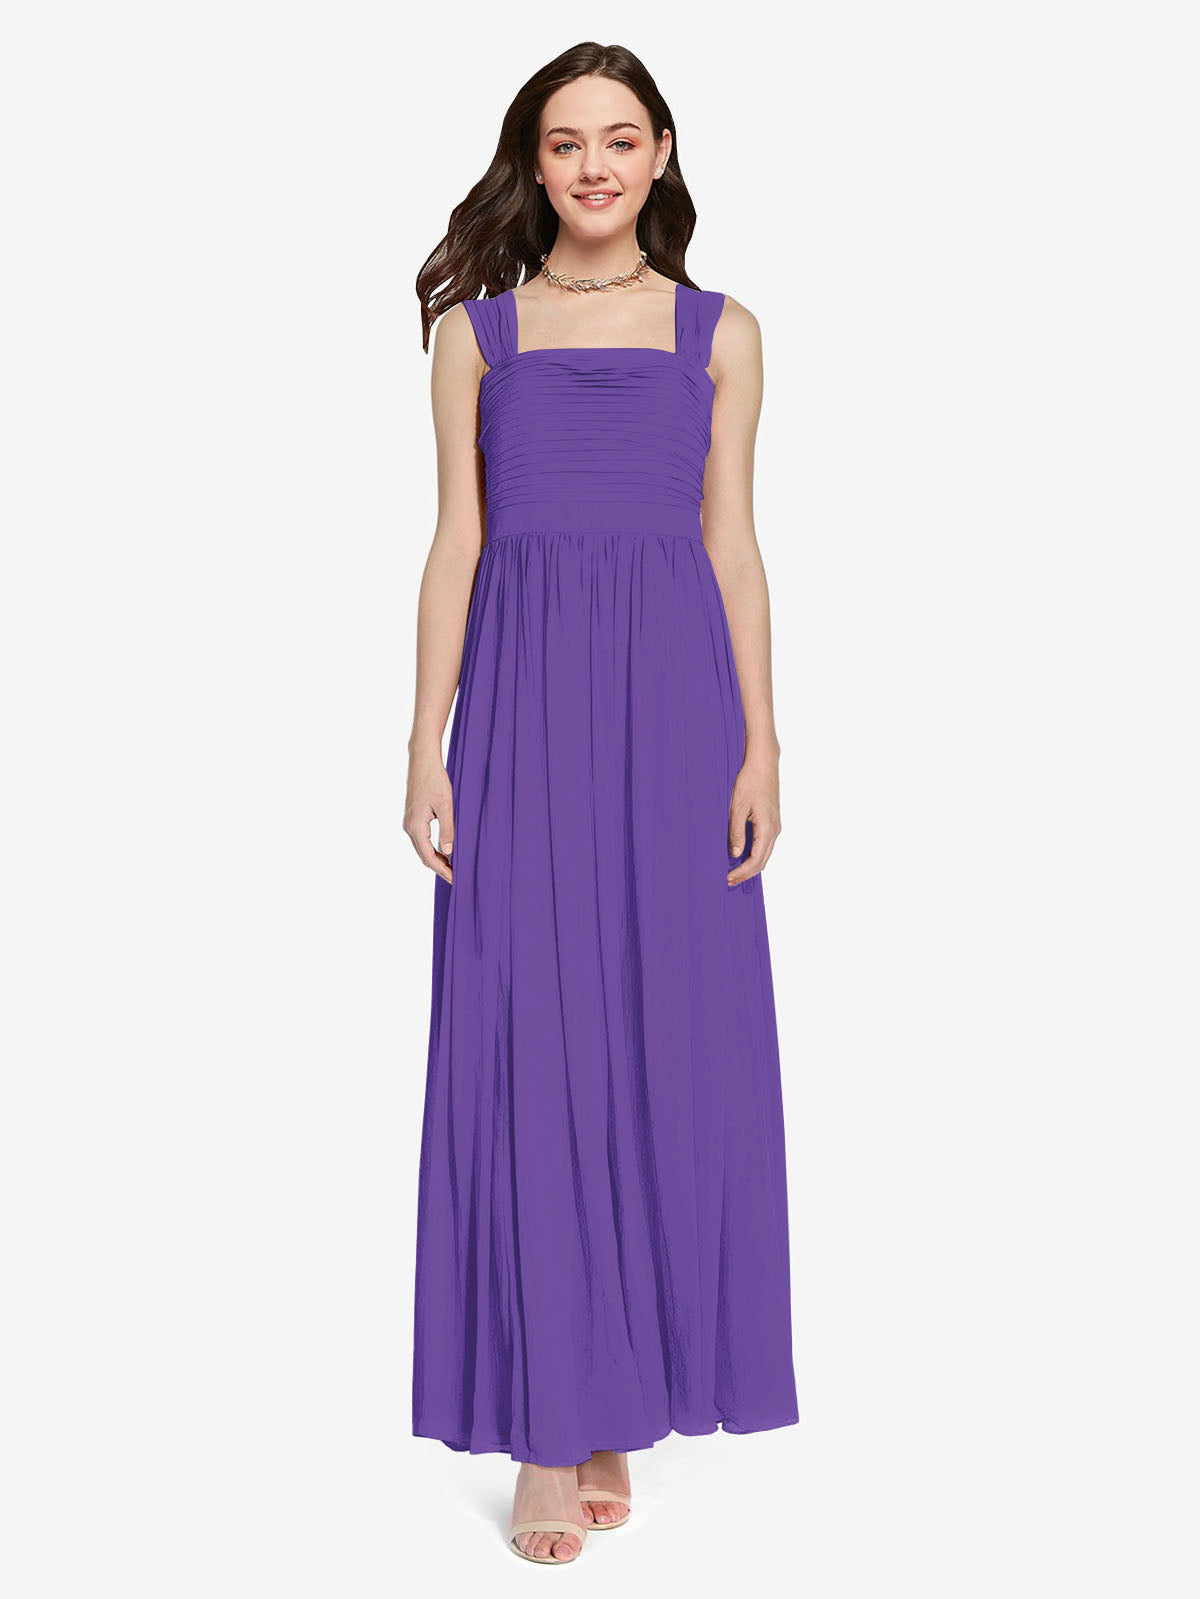 Long A-Line Square Sleeveless Purple Chiffon Bridesmaid Dress Aldridge